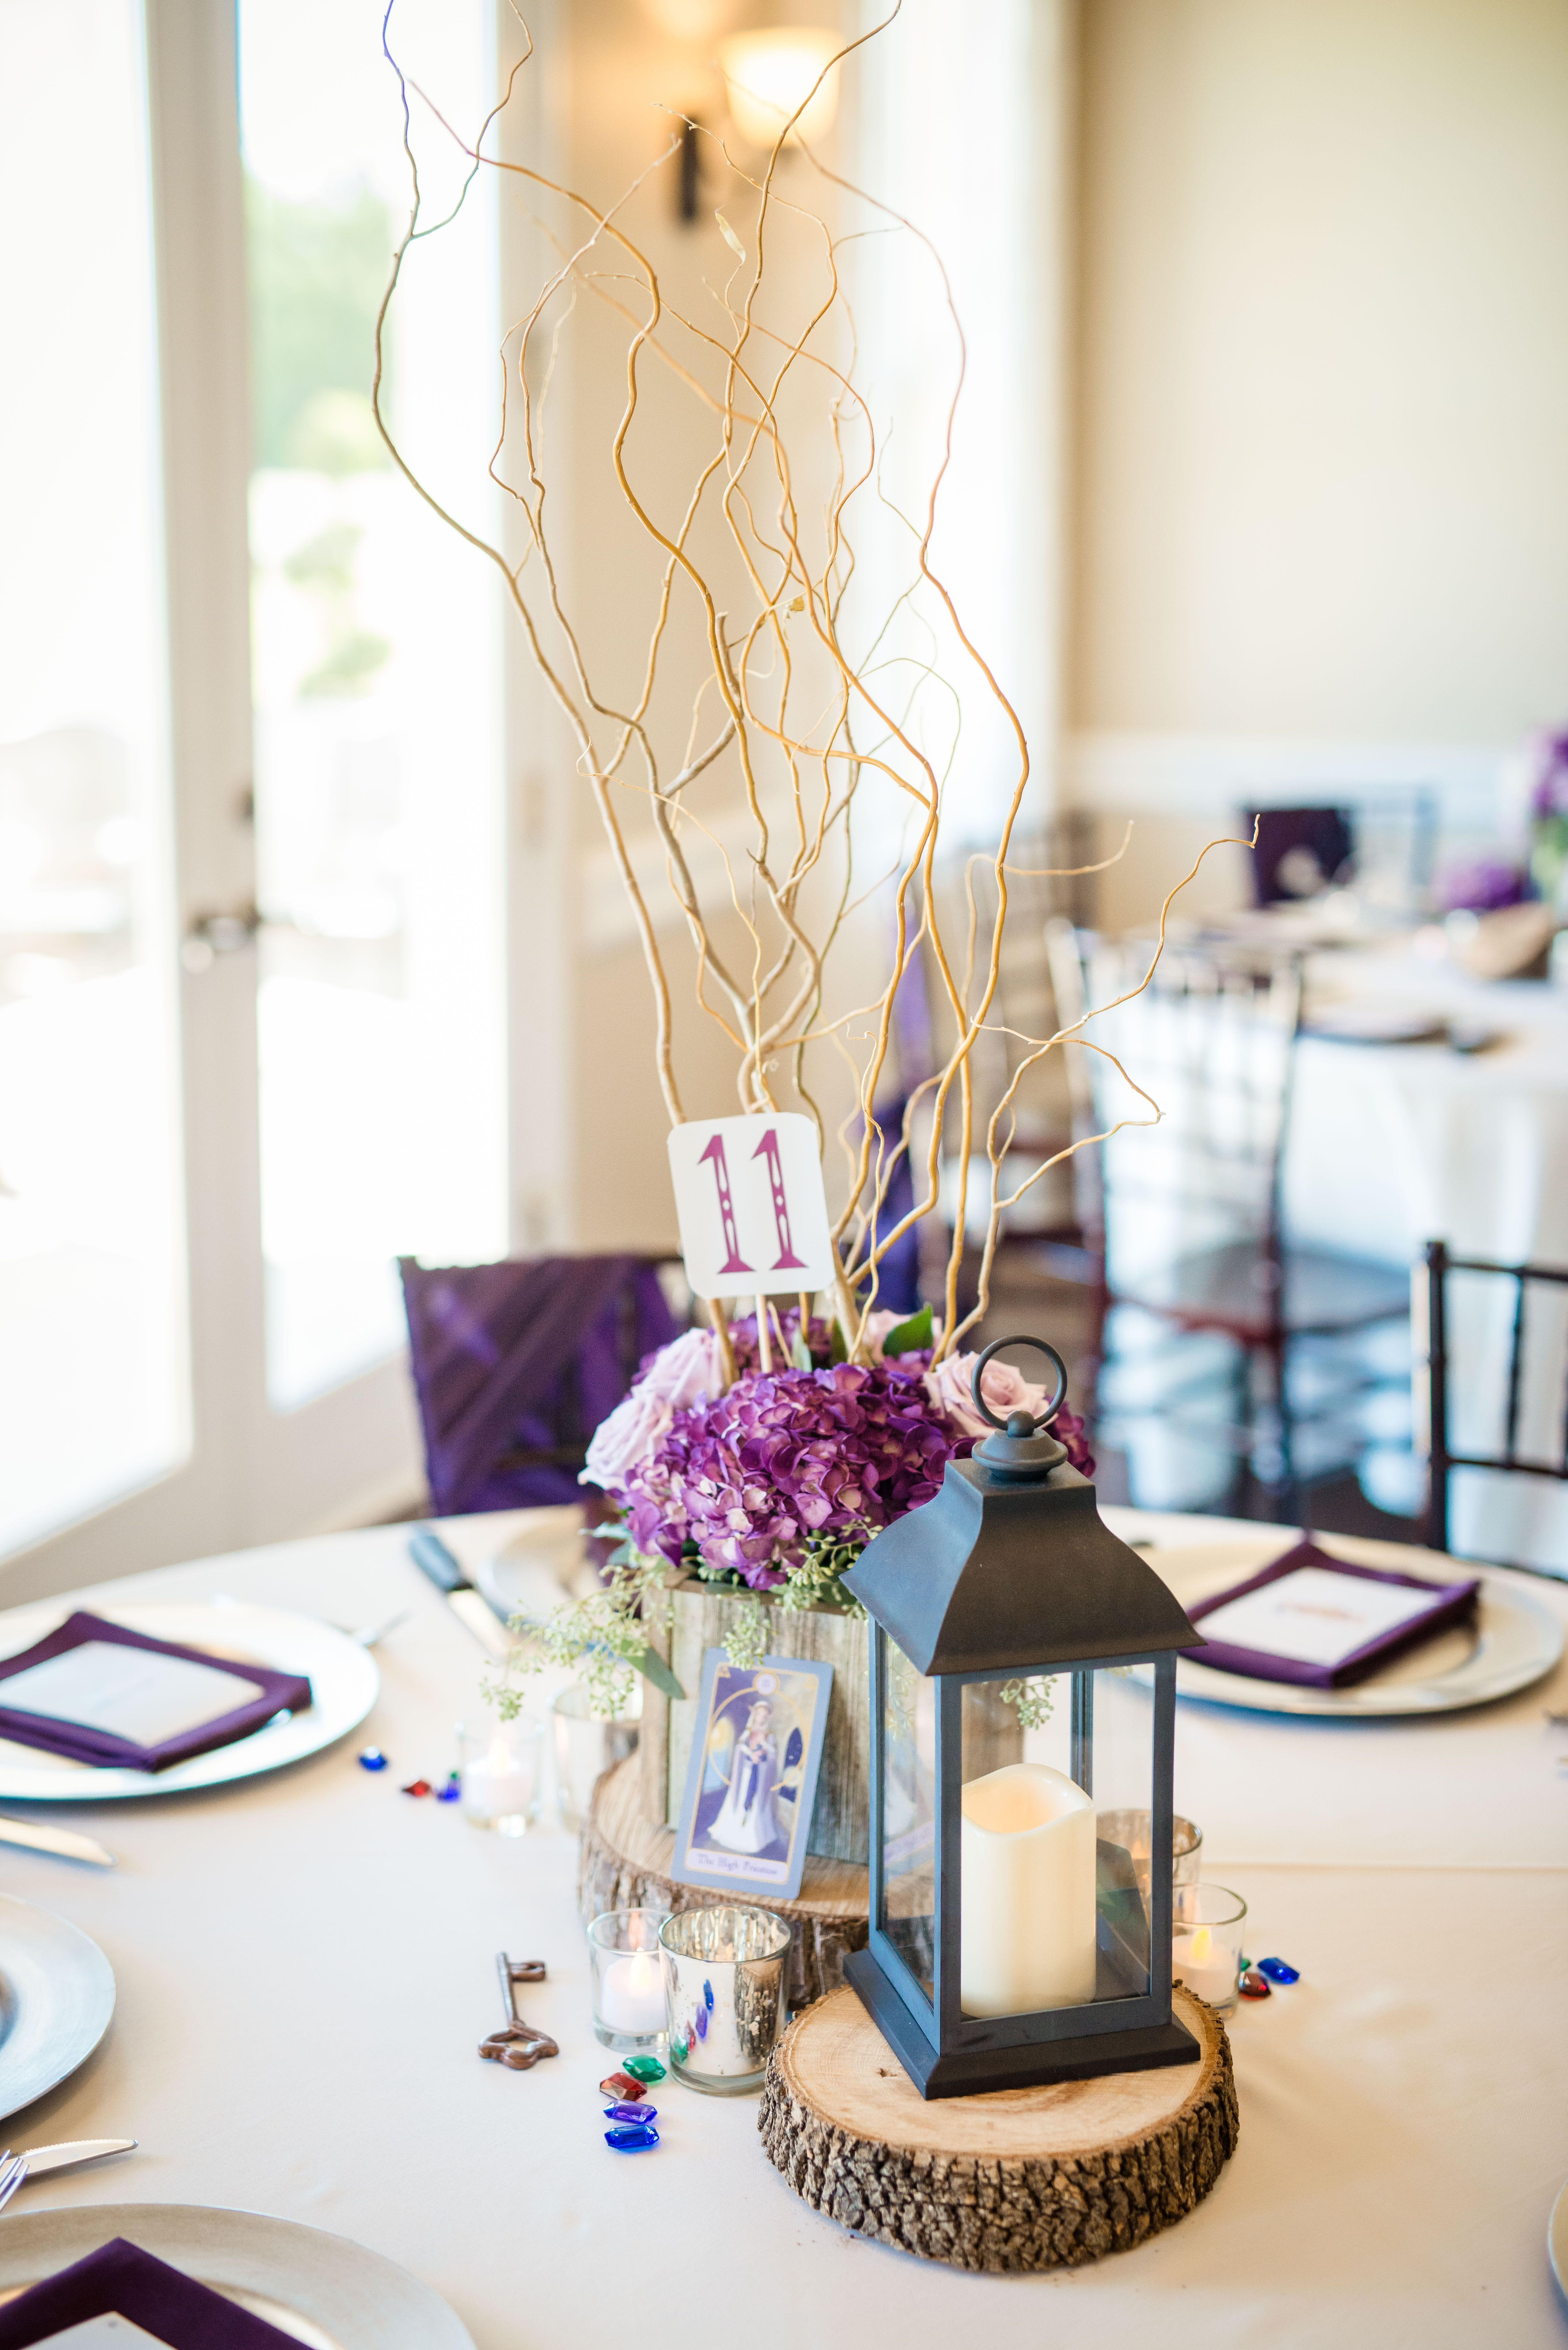 Reception table #11 included a lantern topped with flowers and a ...